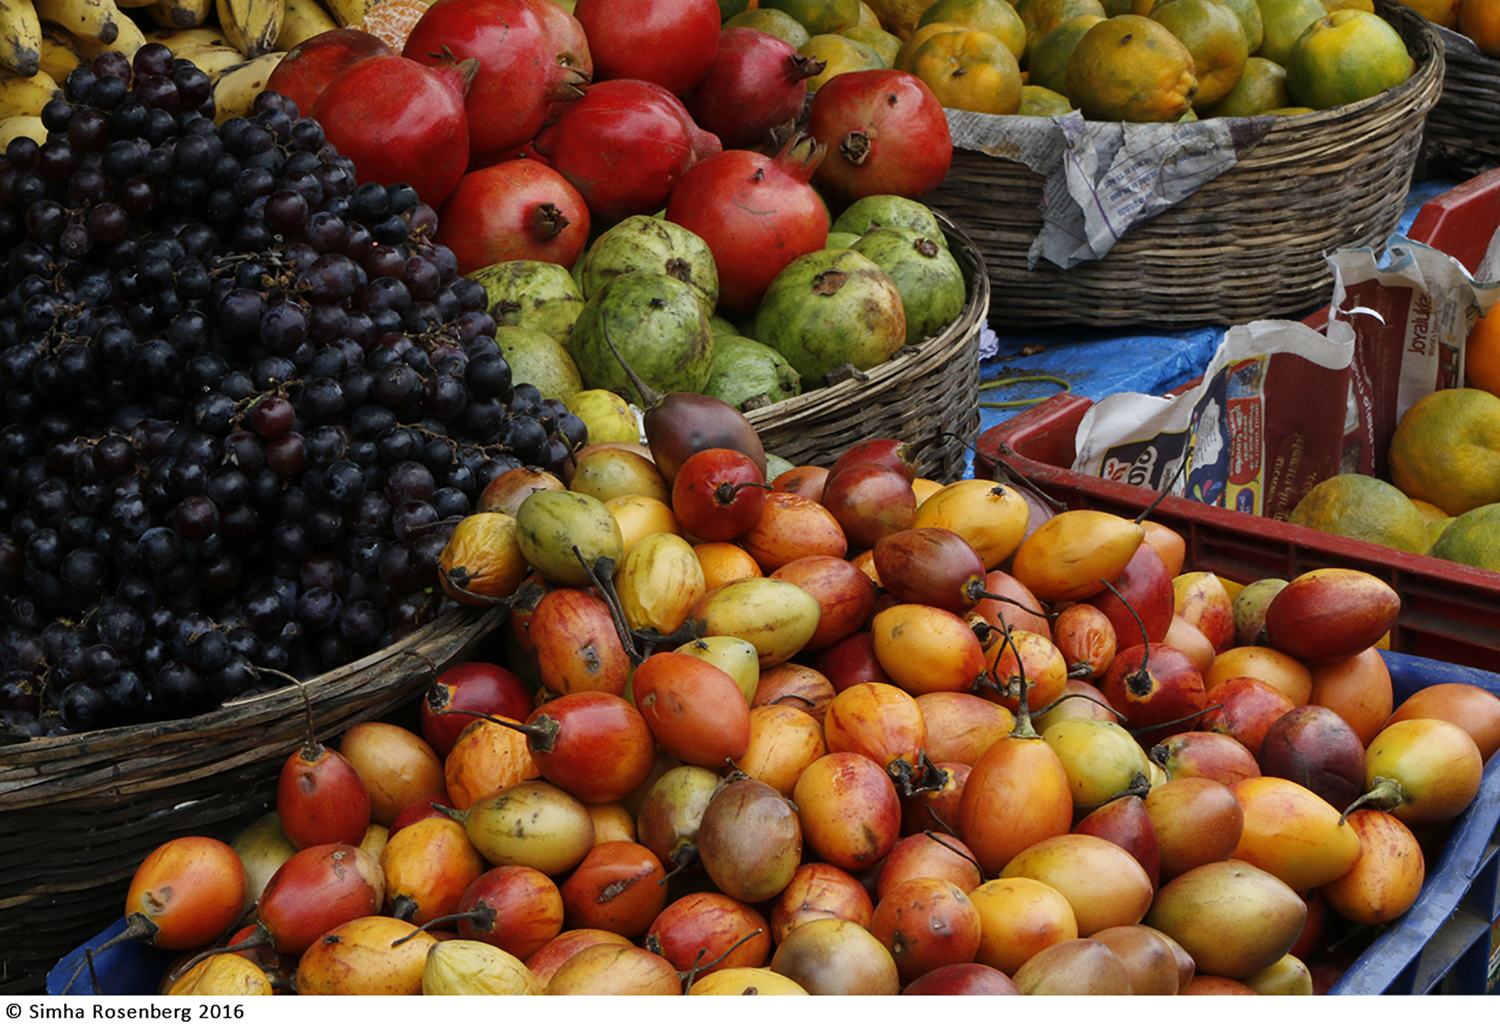 An image of lush fruit at a market is a metaphor for the impact of producing fresh nonprofit content.